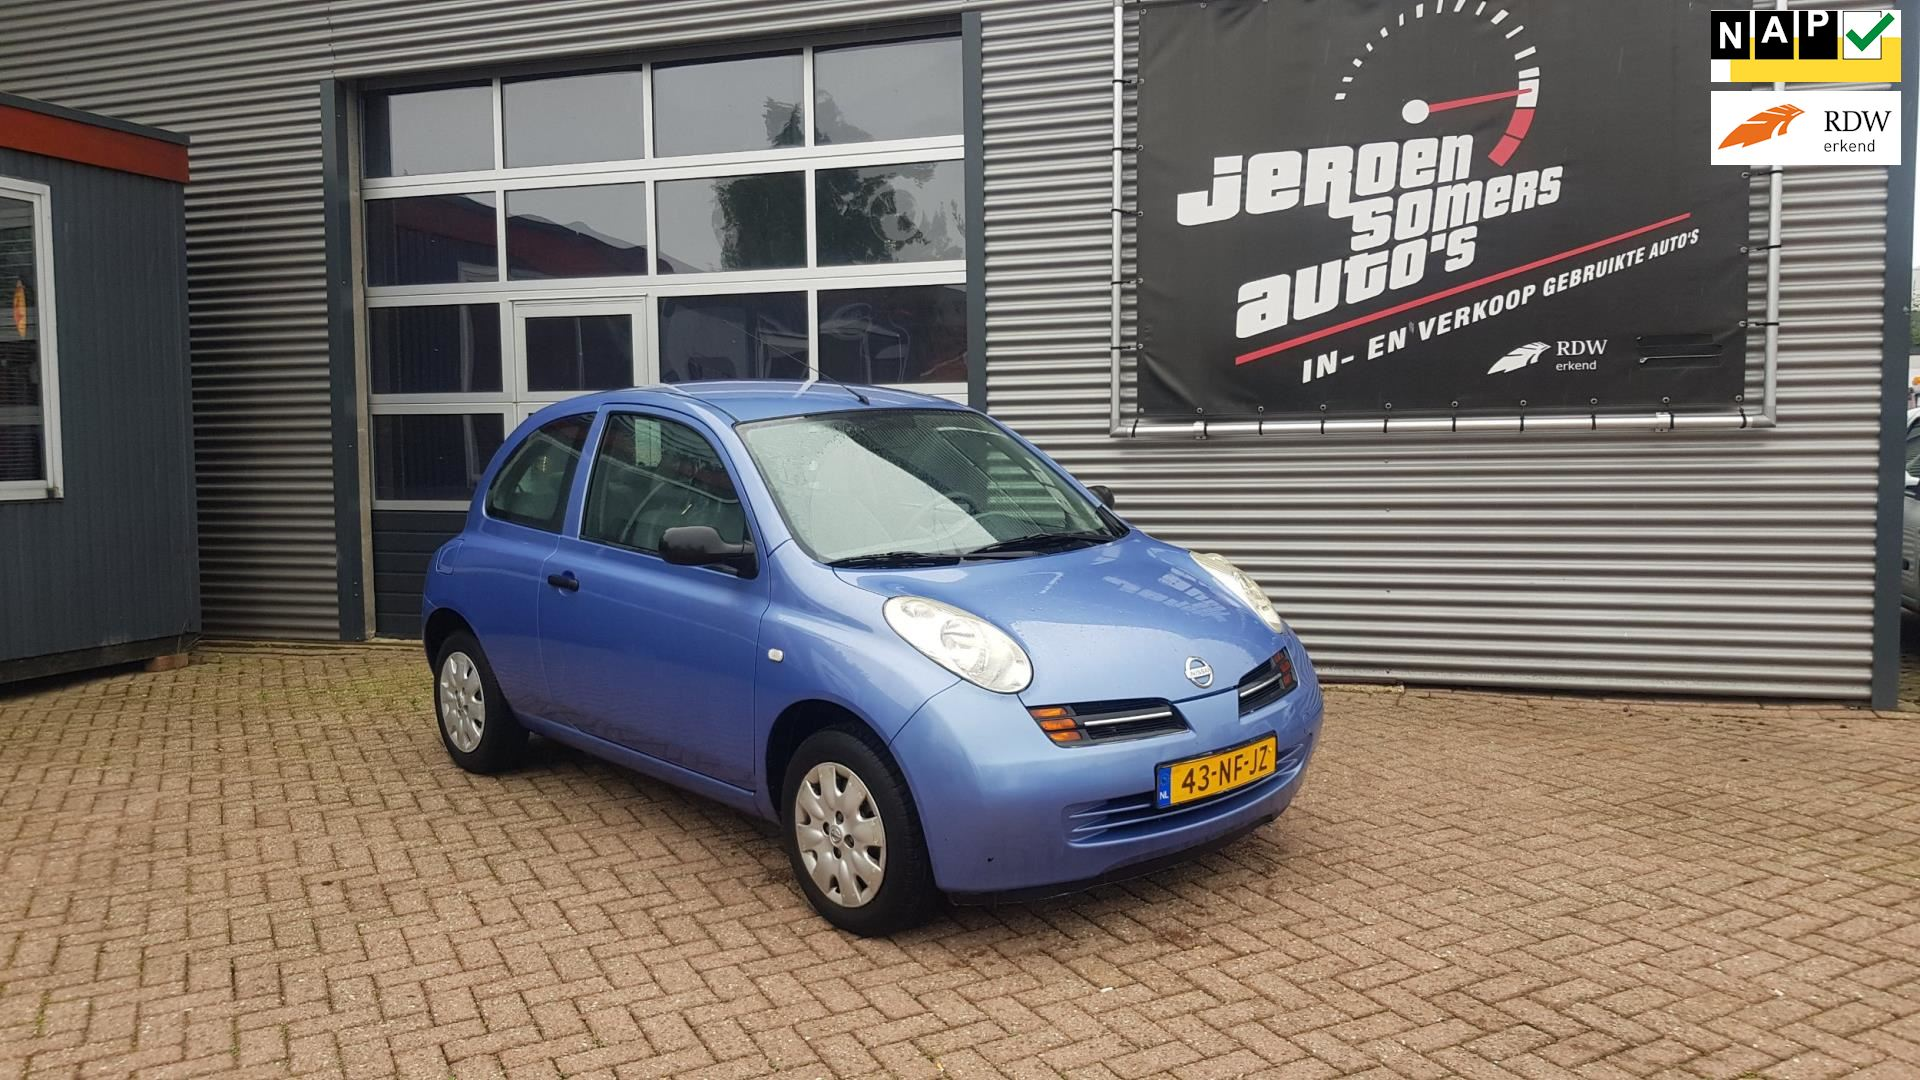 Nissan Micra occasion - Jeroen Somers Auto´s